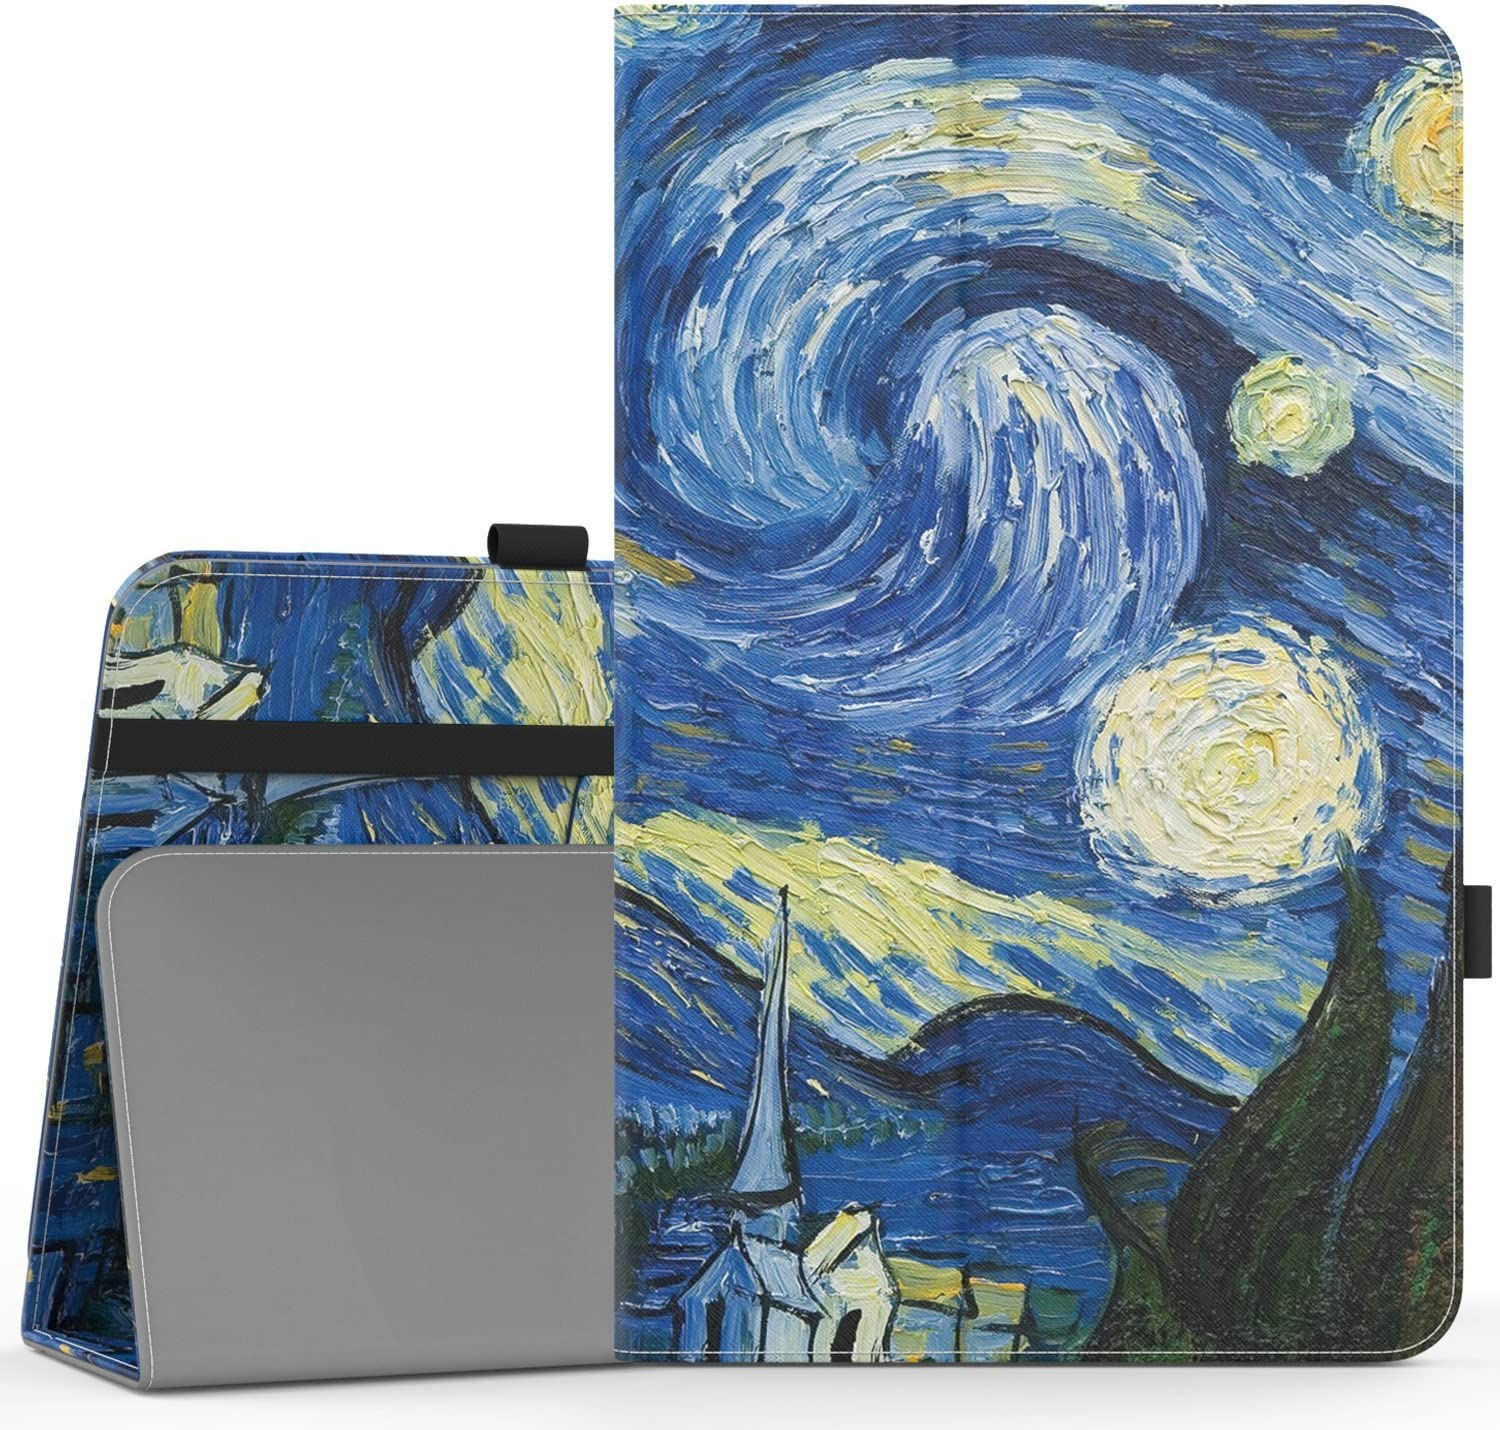 MoKo Case Fit Samsung Galaxy Tab A 10.1 2016 - Slim Folding Cover with Auto Wake/Sleep for Samsung Galaxy Tab A 10.1